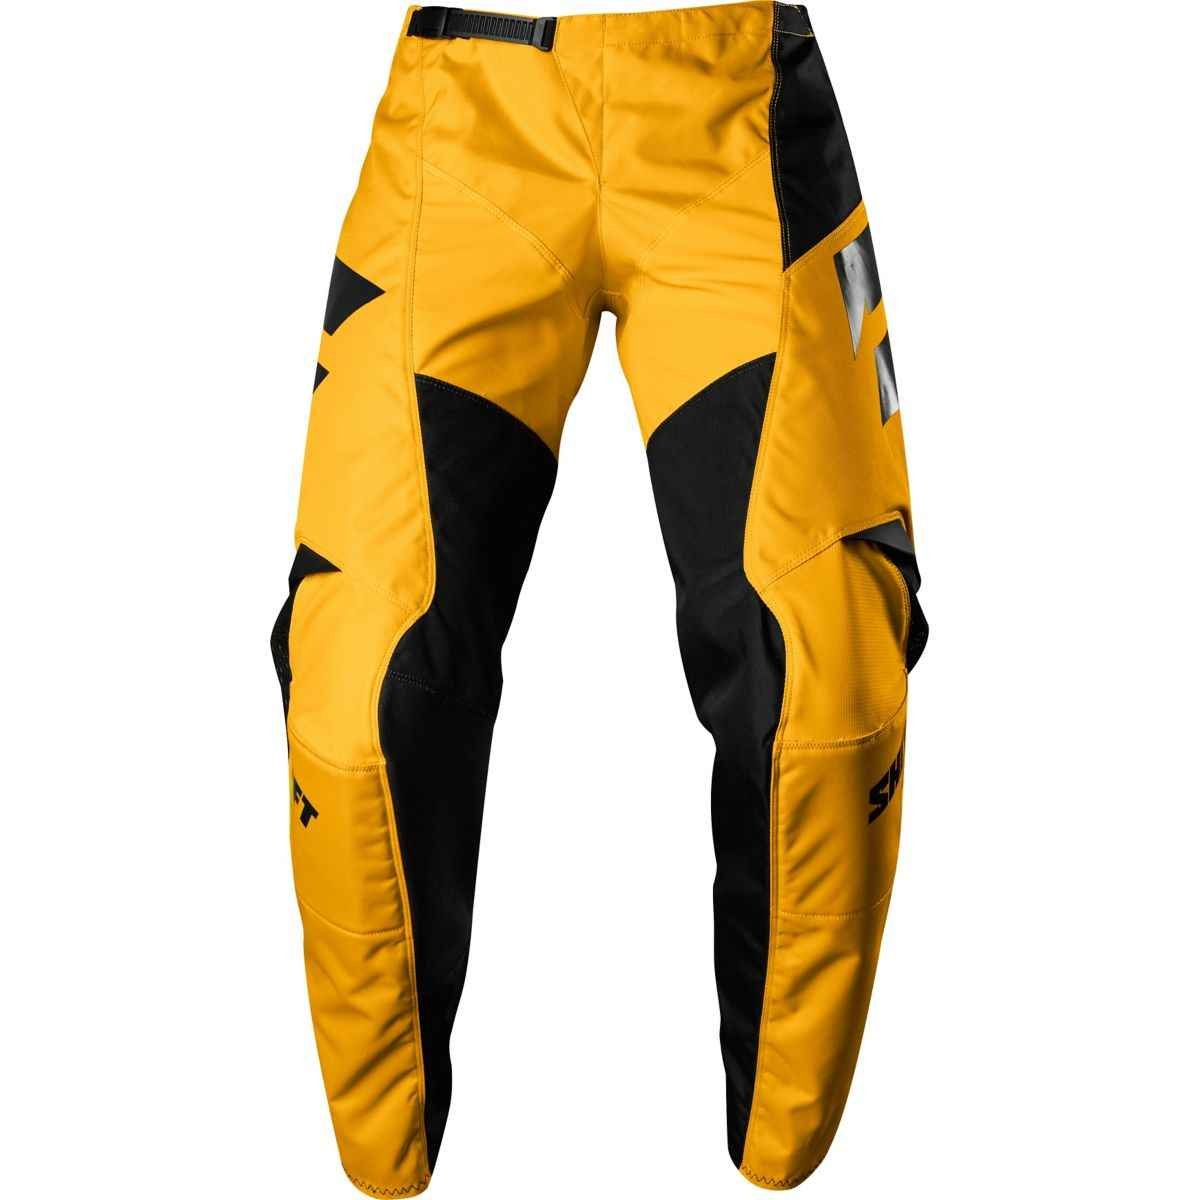 Shift Racing Whit3 Ninety Seven Youth Boys Off-Road Motorcycle Pants - 28 / Yellow 21454-005-Y28